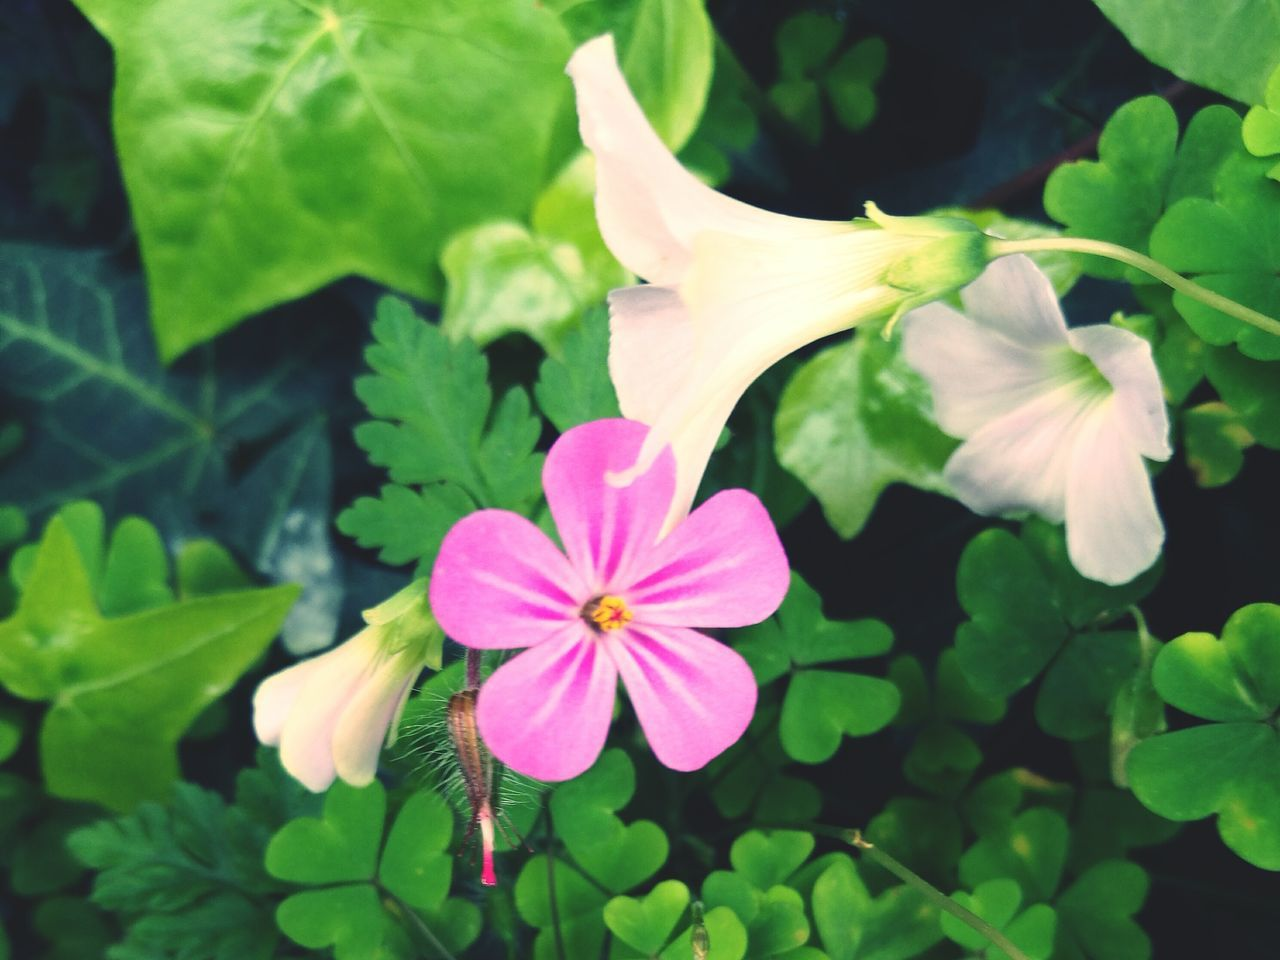 Flower Freshness Fragility Beauty In Nature Nature Petal Growth Purple Leaf Flower Head Plant Blooming No People Day Green Color Outdoors Pink Color Close-up